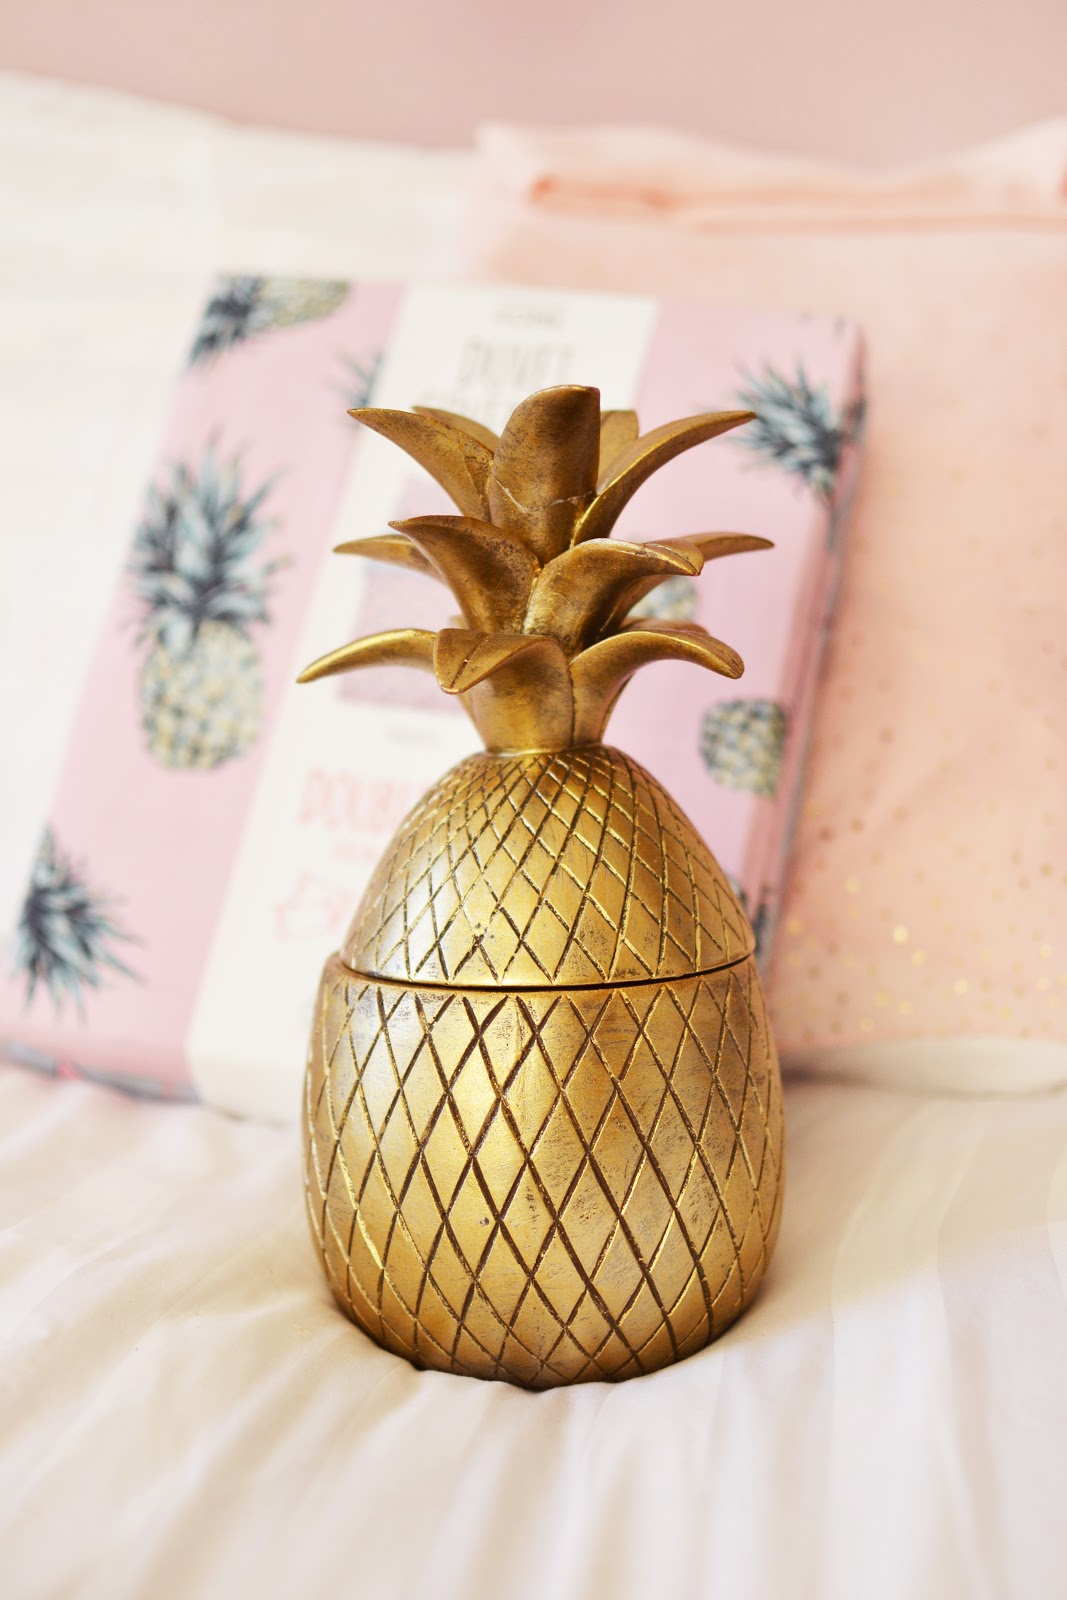 golden pineapple ornament homeware